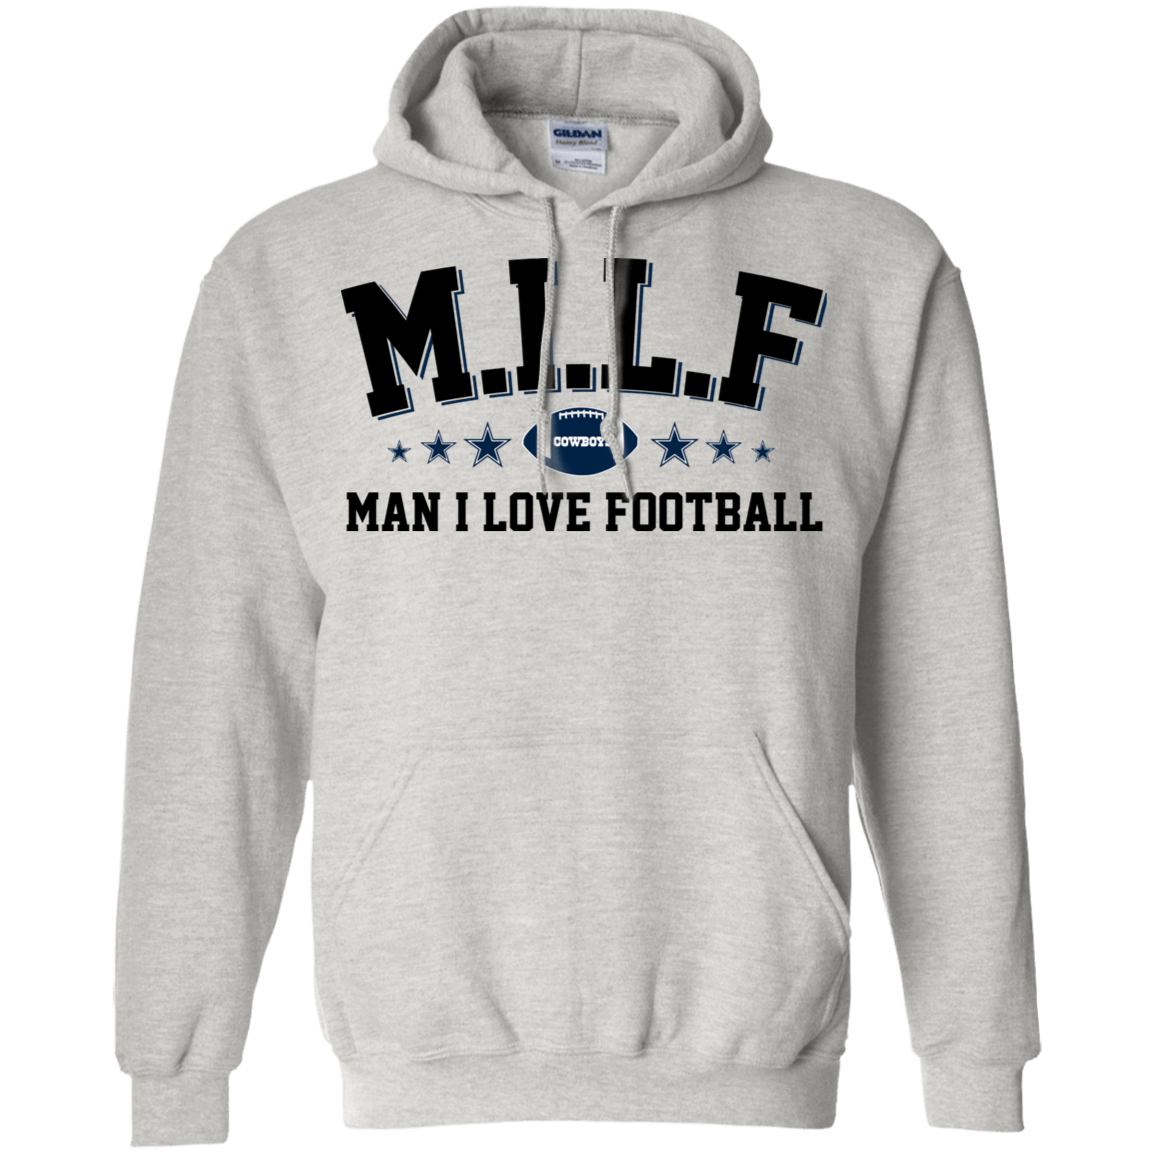 Milf Man I Love Football Cowboys T-Shirts, Hoodie, Tank 541-4748-78318708-23071 - Tee Ript